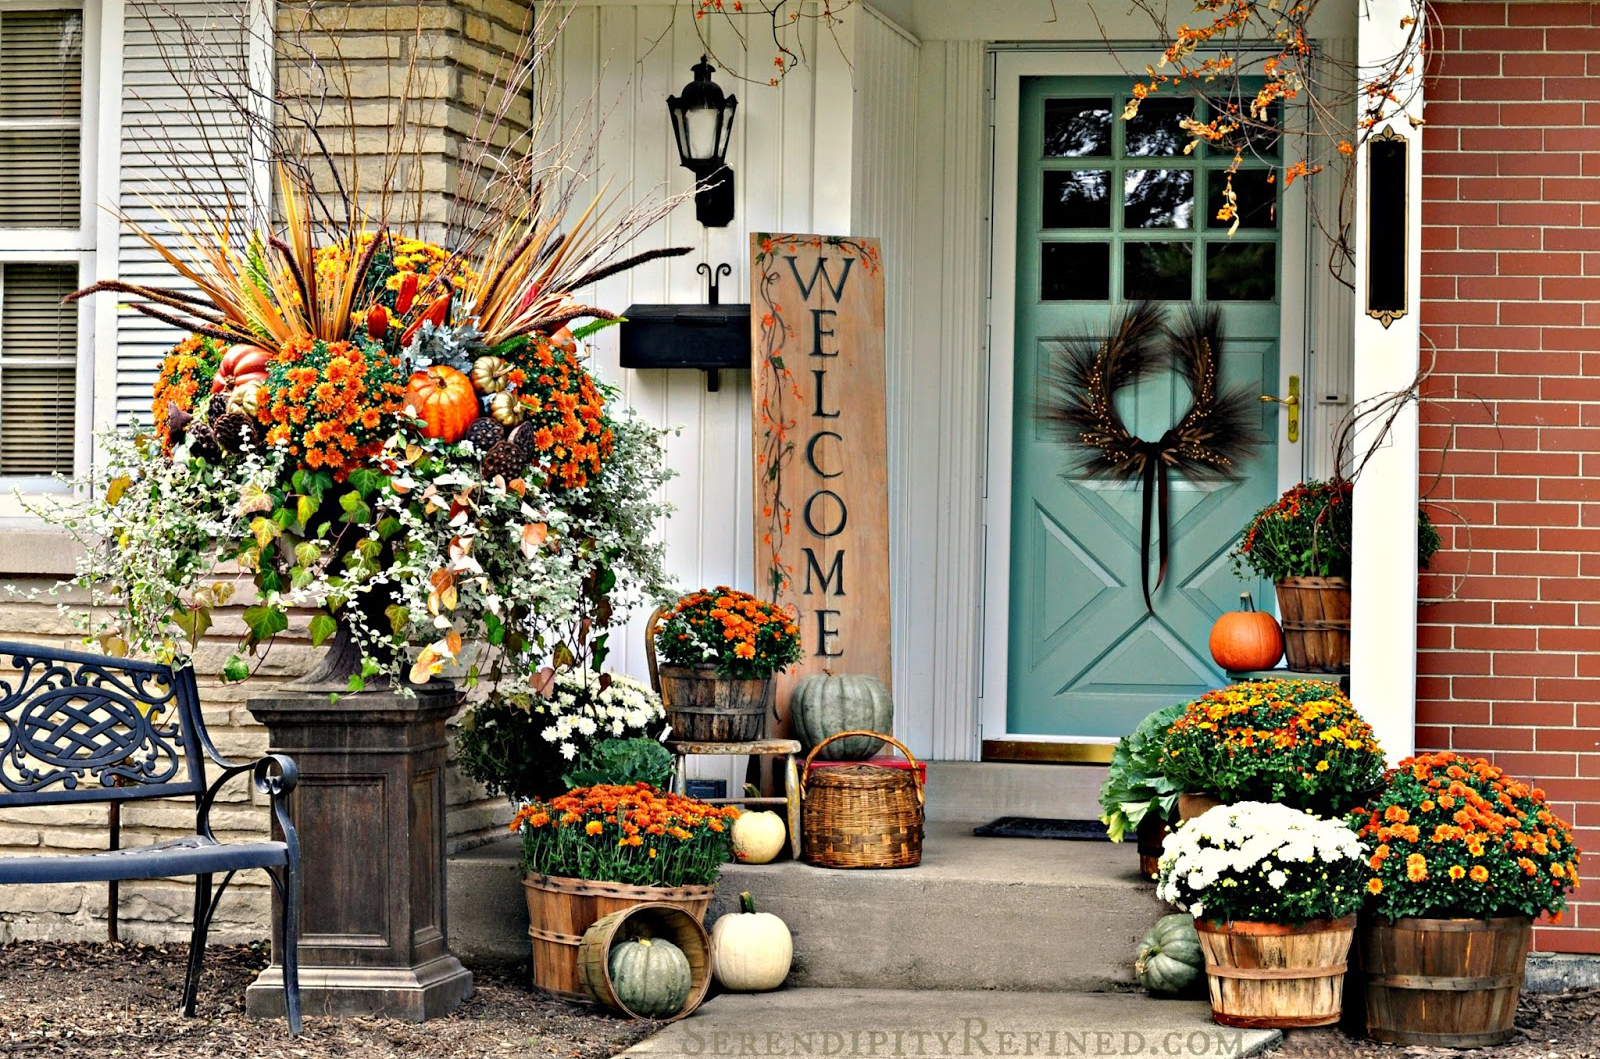 Doors pleasant fall decorating ideas for outside pinterest autumn - 37 Fall Porch Decorating Ideas Ways To Decorate Your Porch For Fall